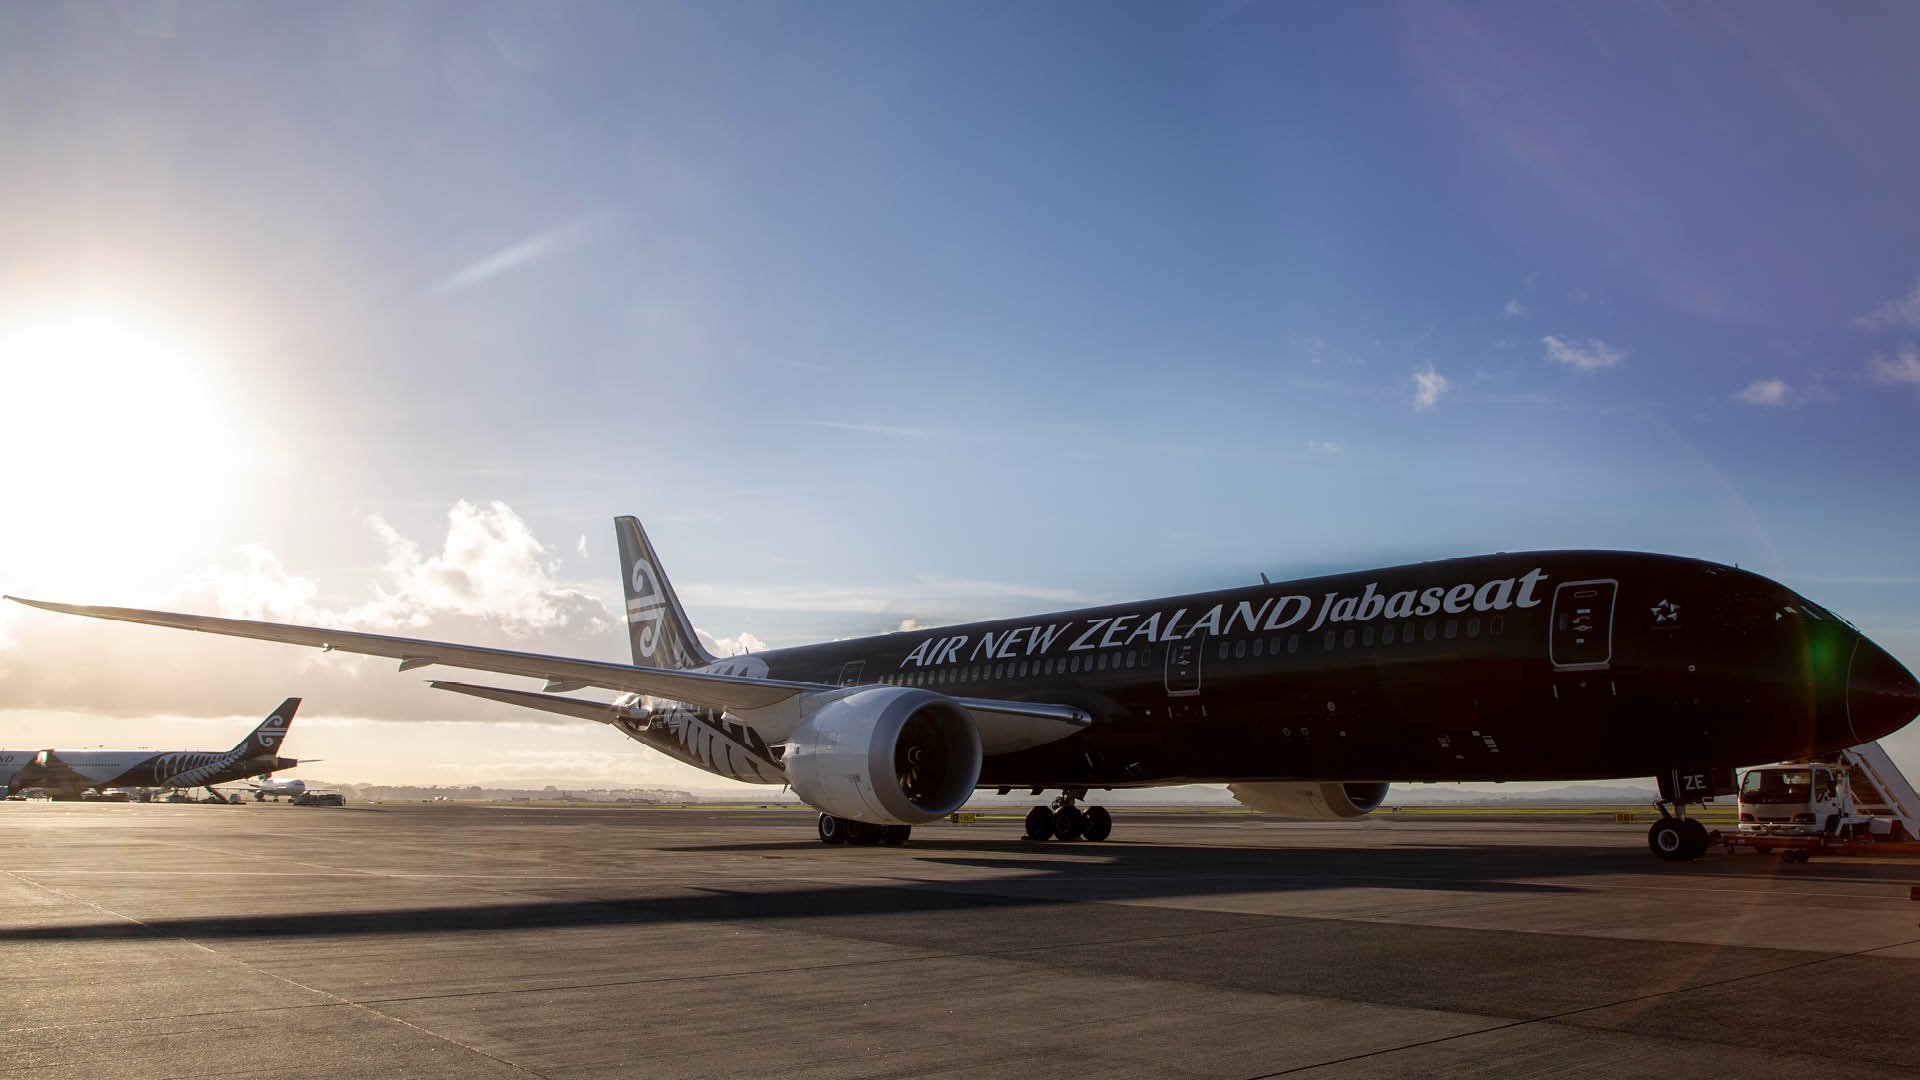 Jabaseat: Air New Zealand has invited a limited number of passengers to get vaccinated on a plane...